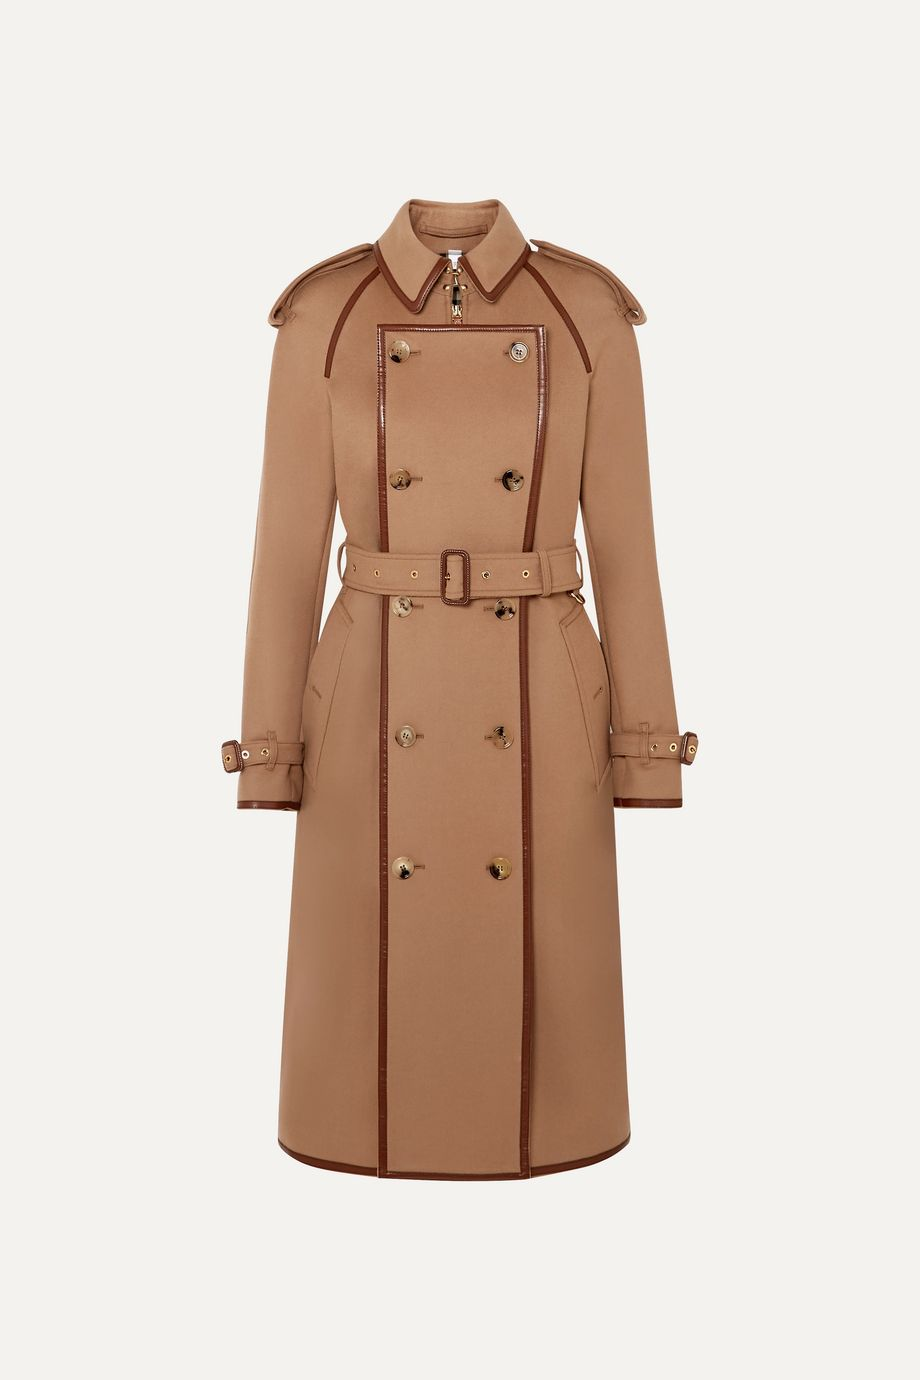 Burberry Convertible leather-trimmed wool and cashmere-blend trench coat